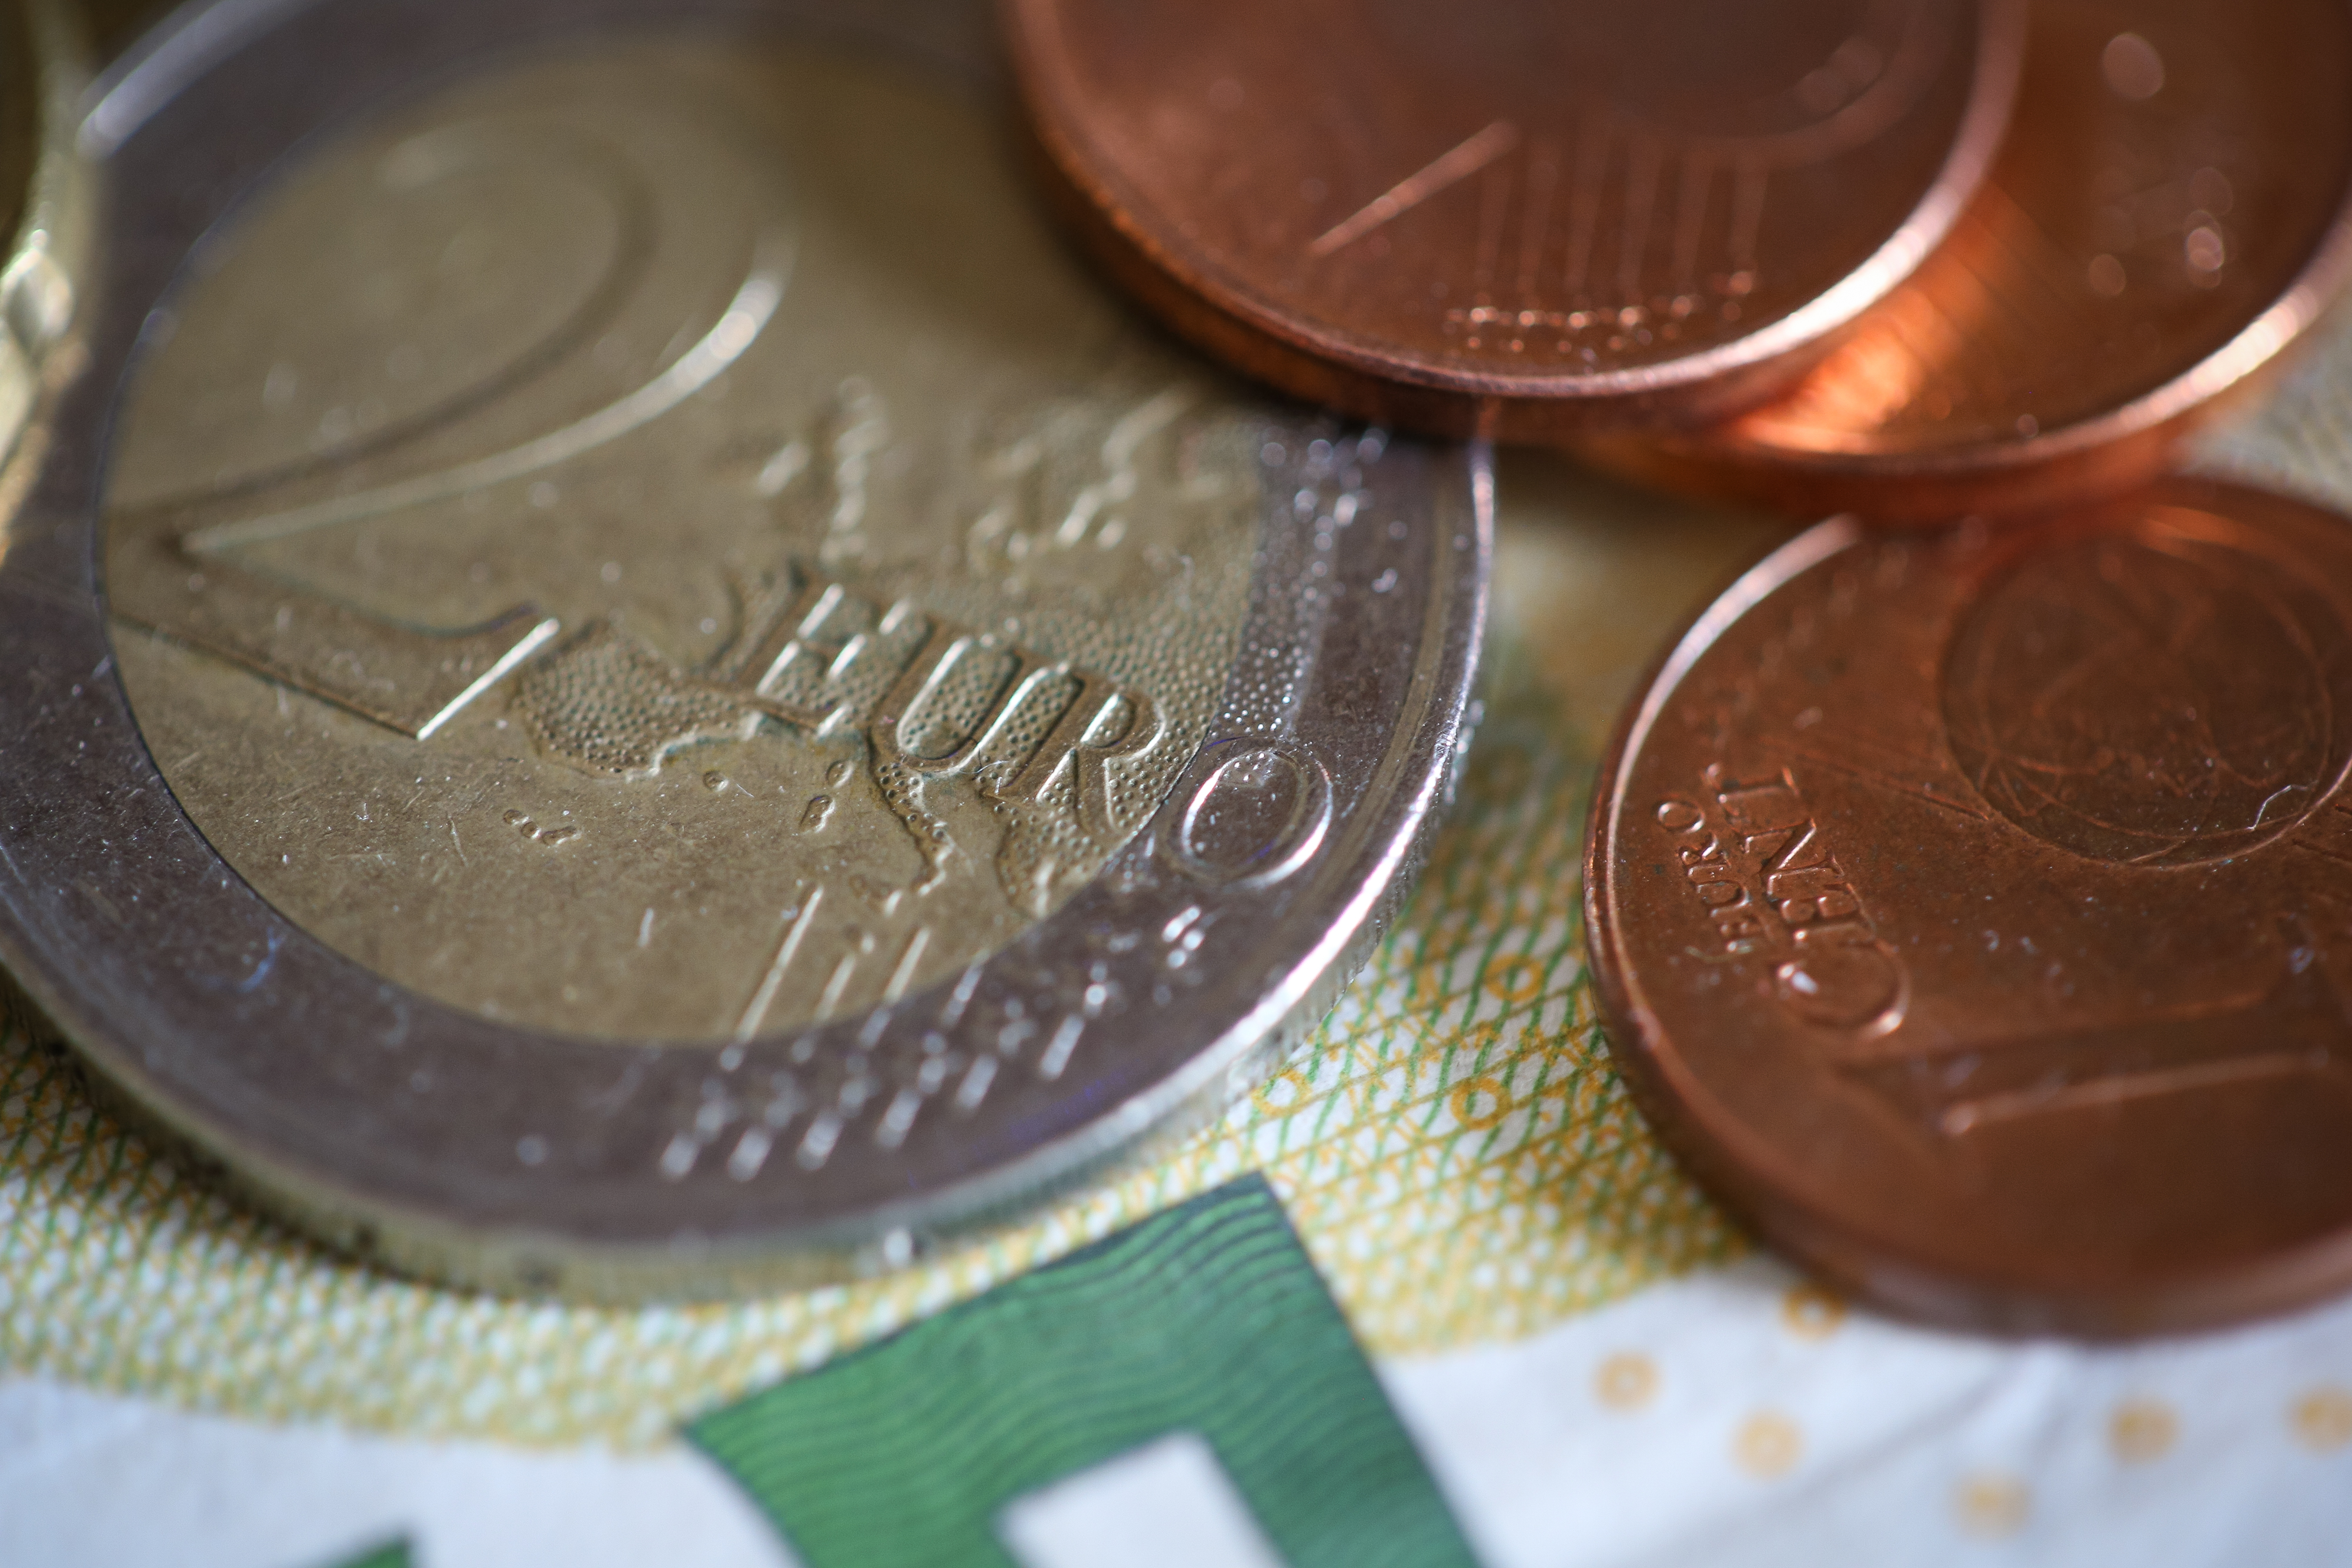 euro-coins-close-up-picjumbo-com